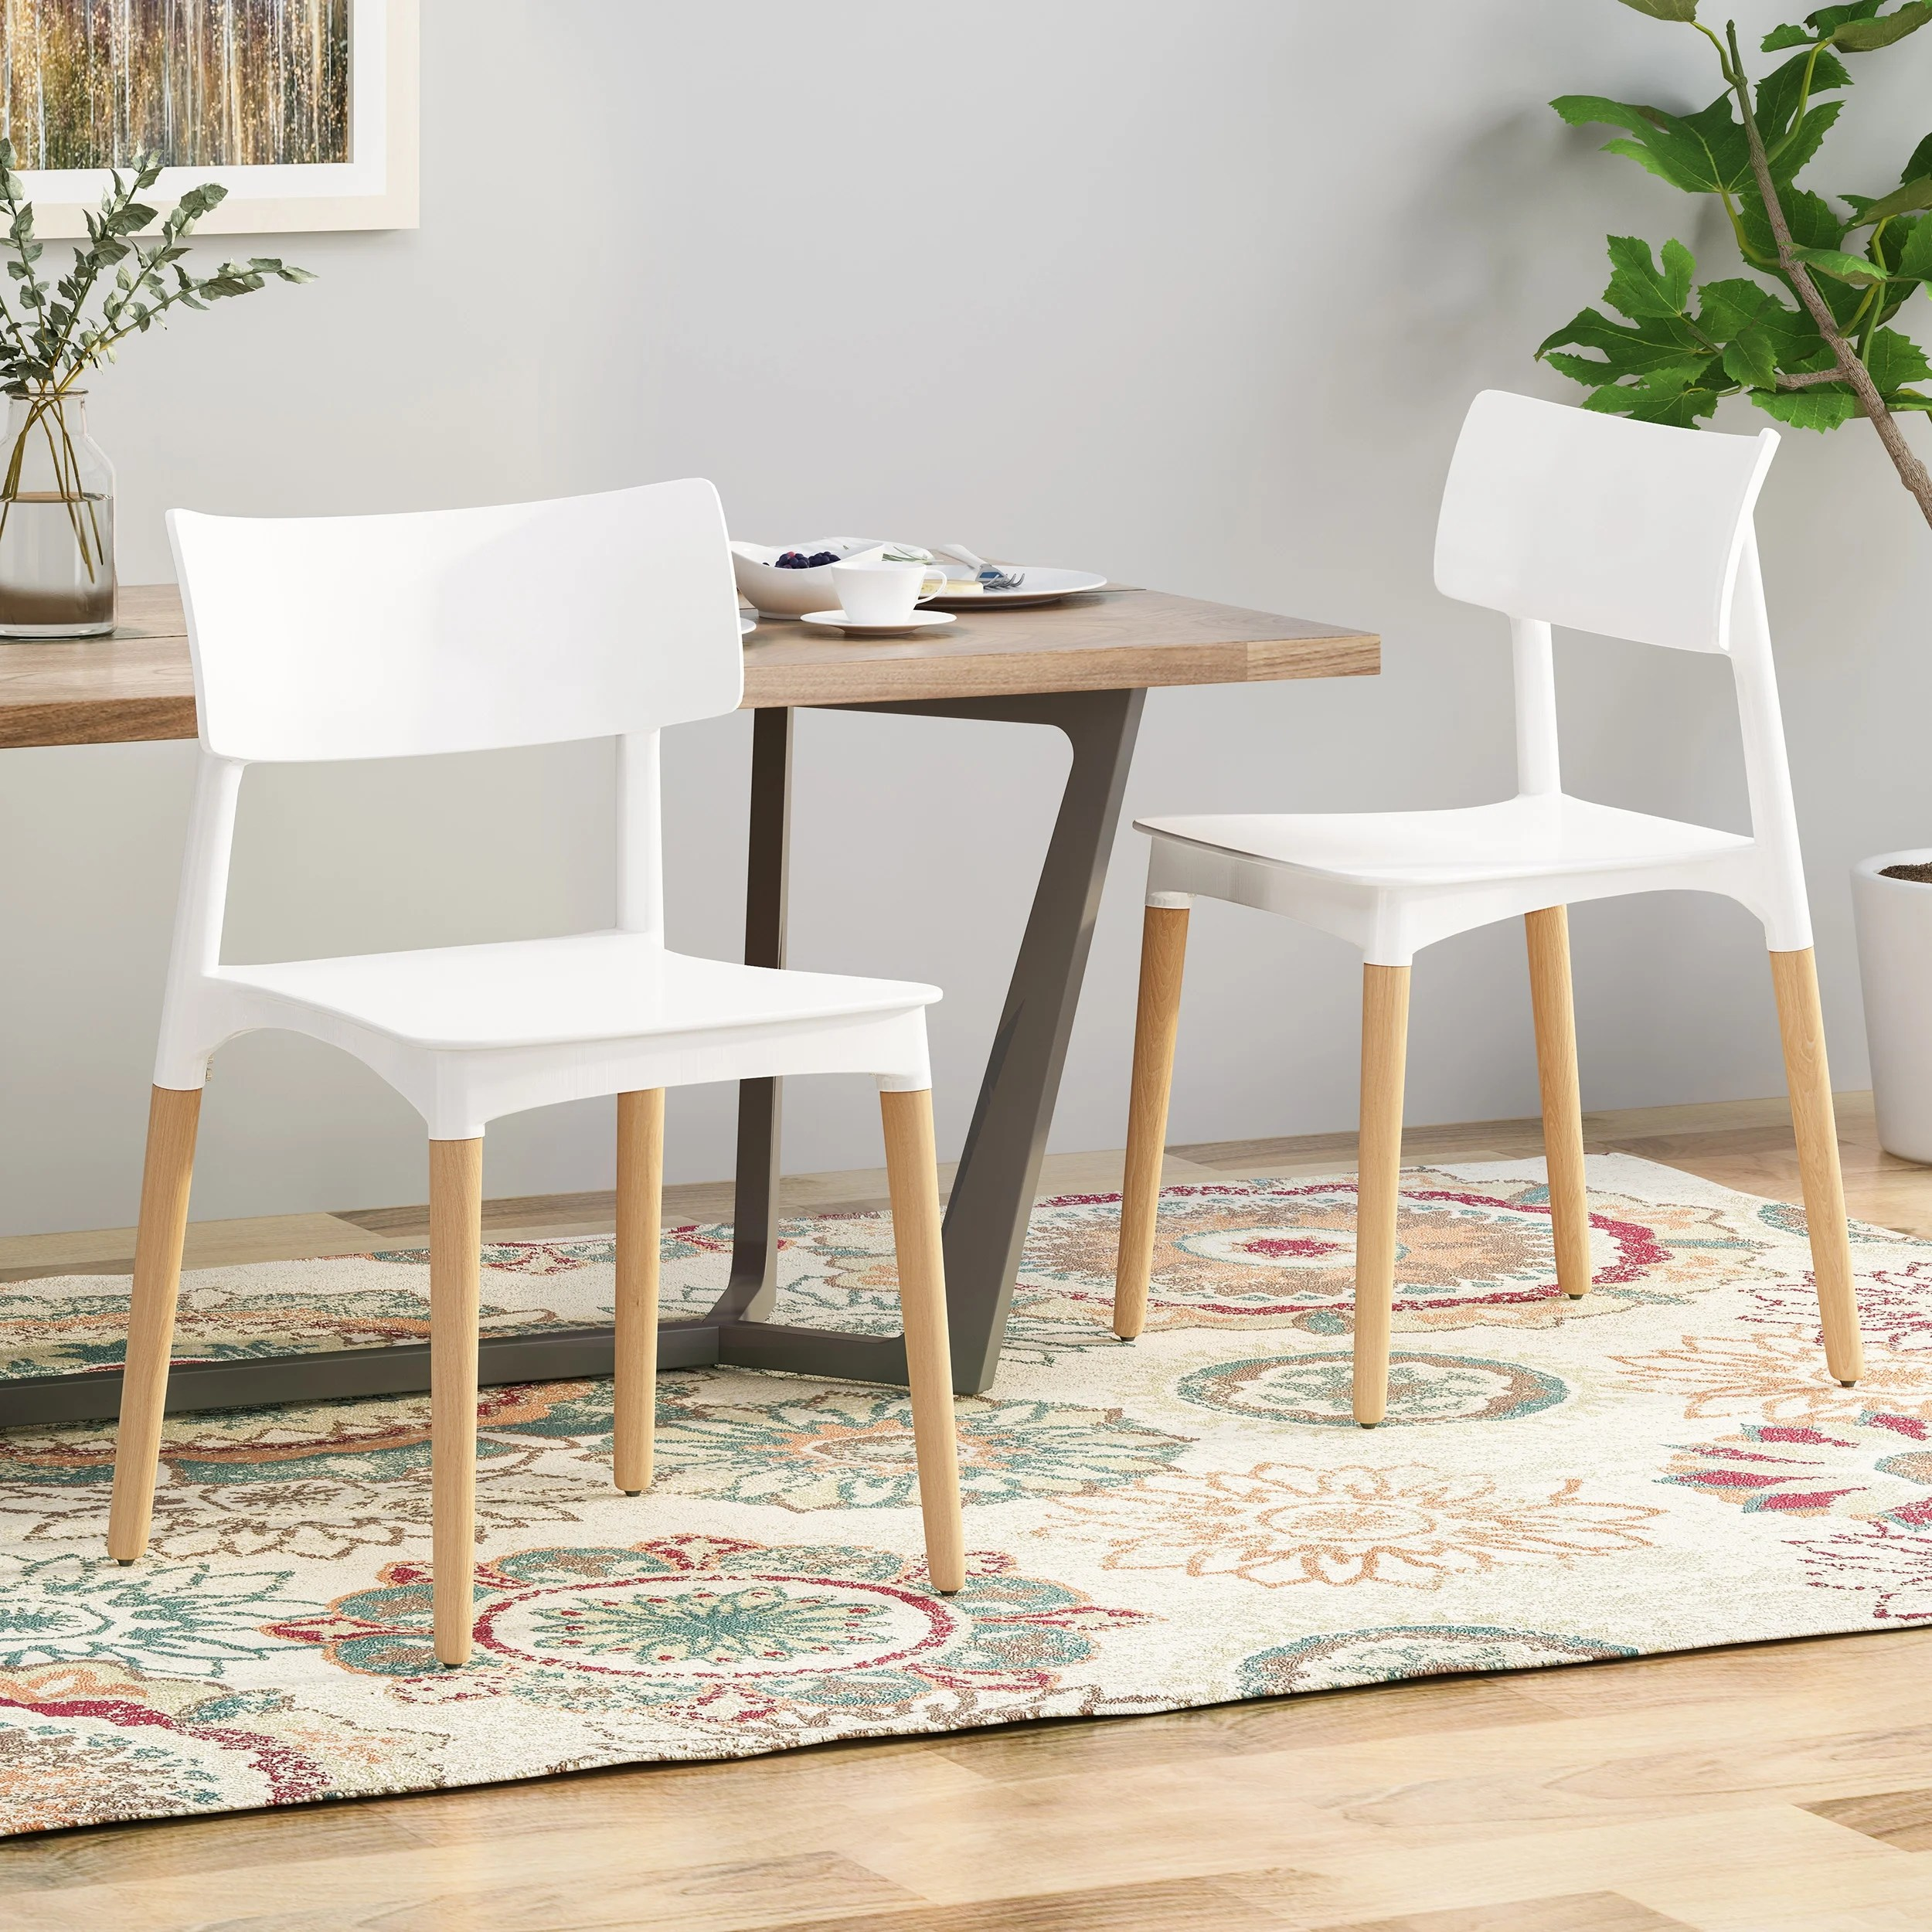 Margaretta Beech Wood Dining Chairs Set Of 2 By Christopher Knight Home Overstock 27414205 White Natural